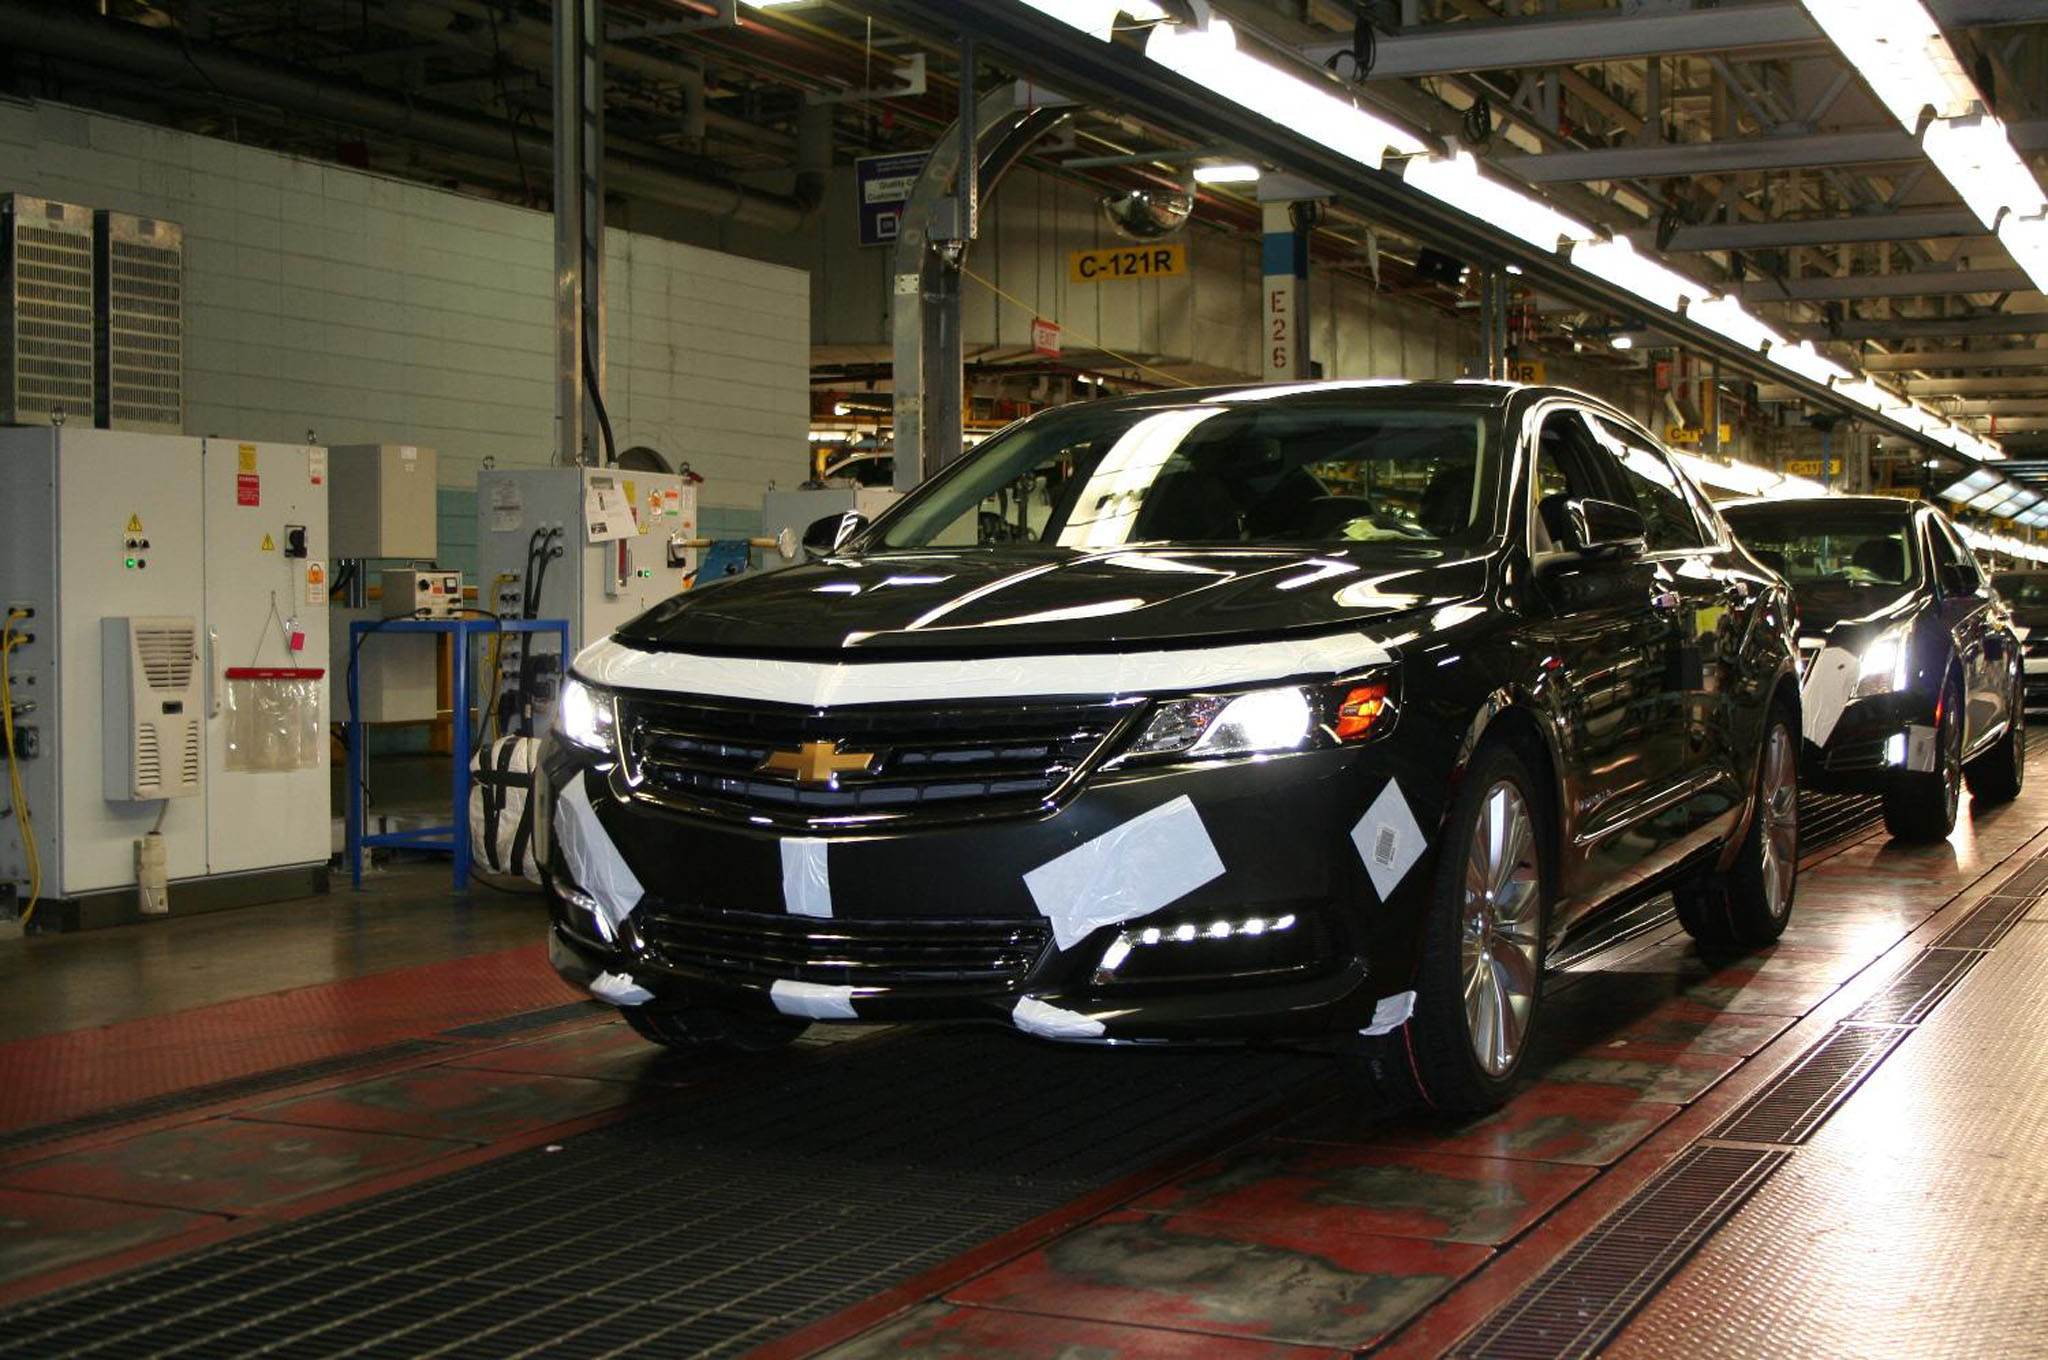 2014 Impala Production Line1